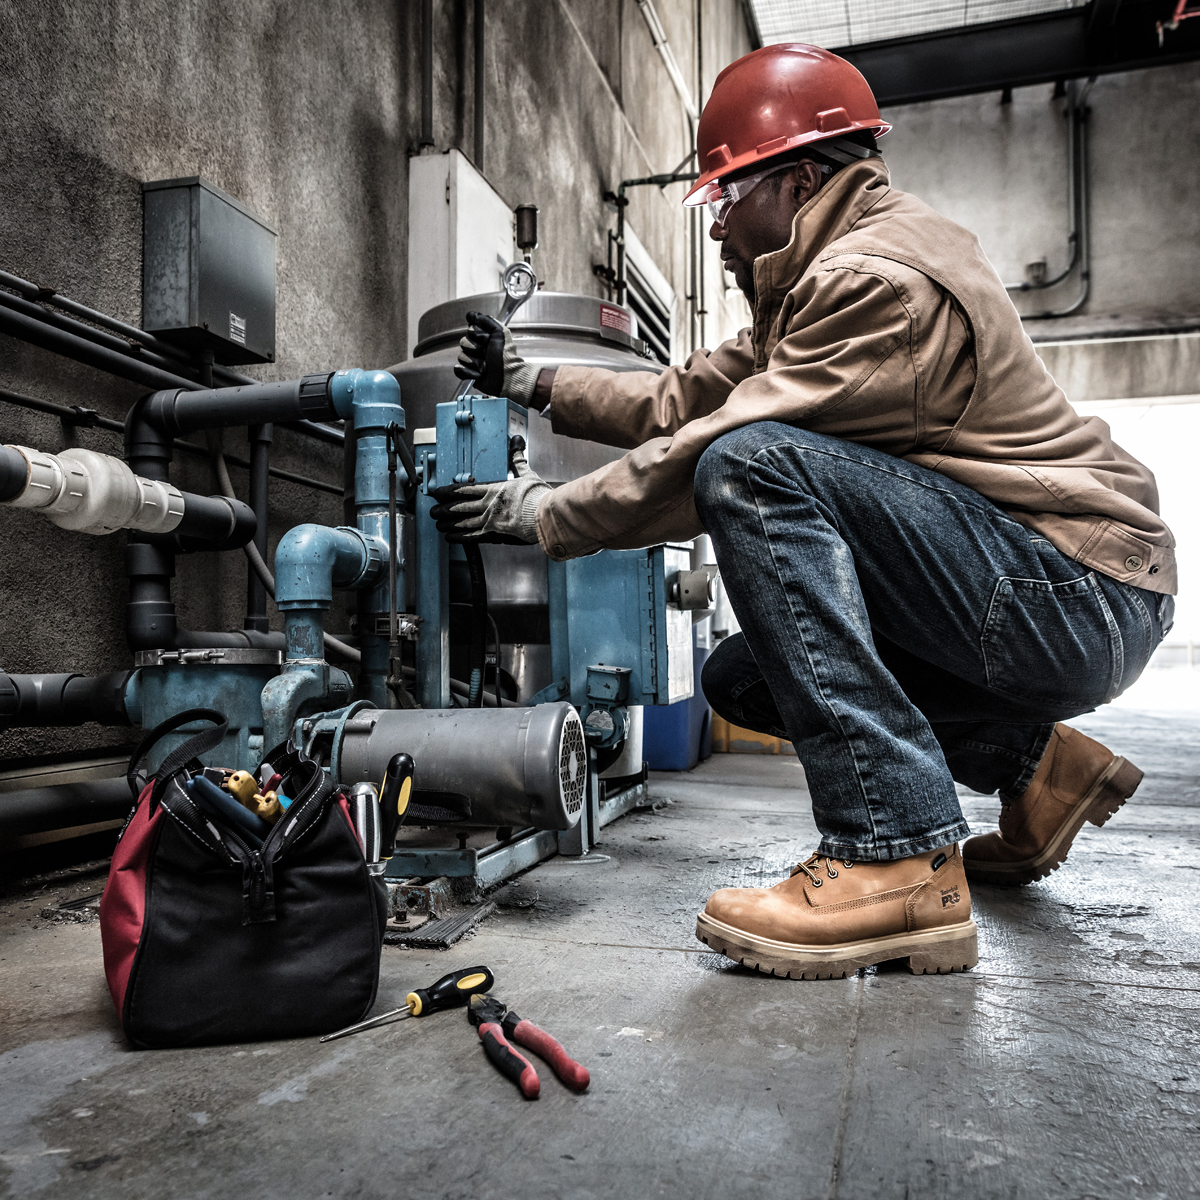 Man in Hard Hat Wearing Work Boots